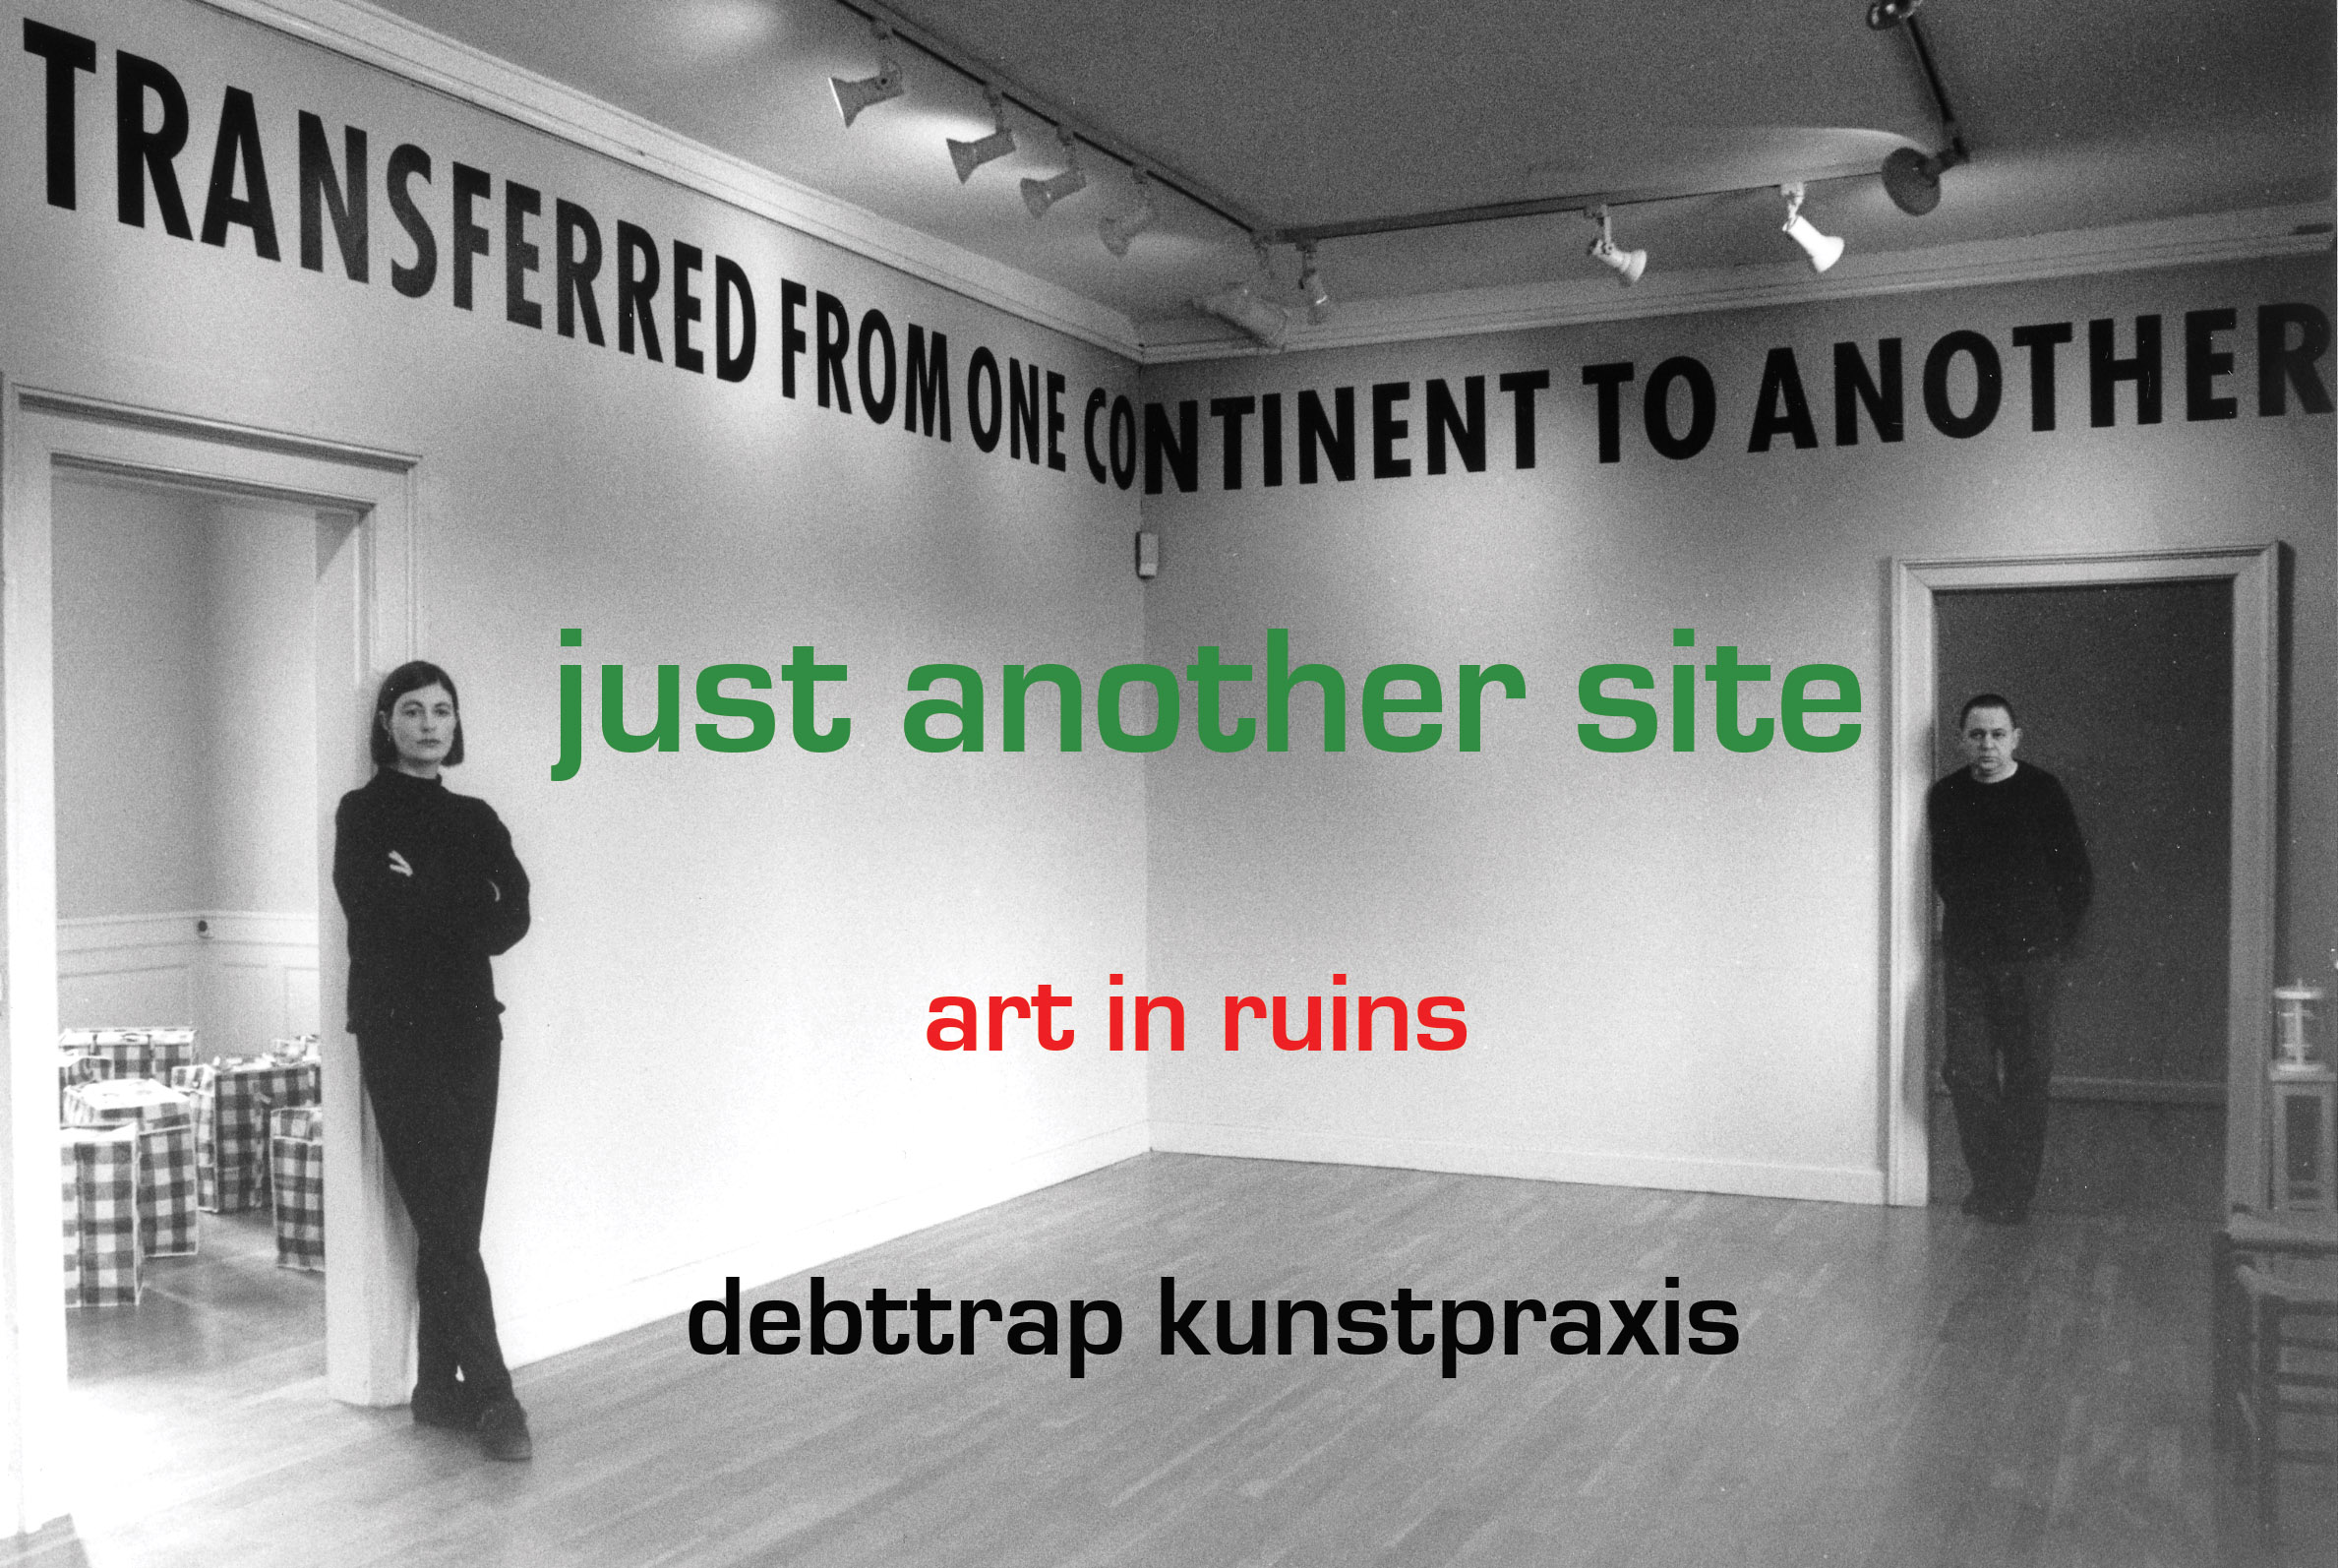 just another site: debttrap kunstpraxis